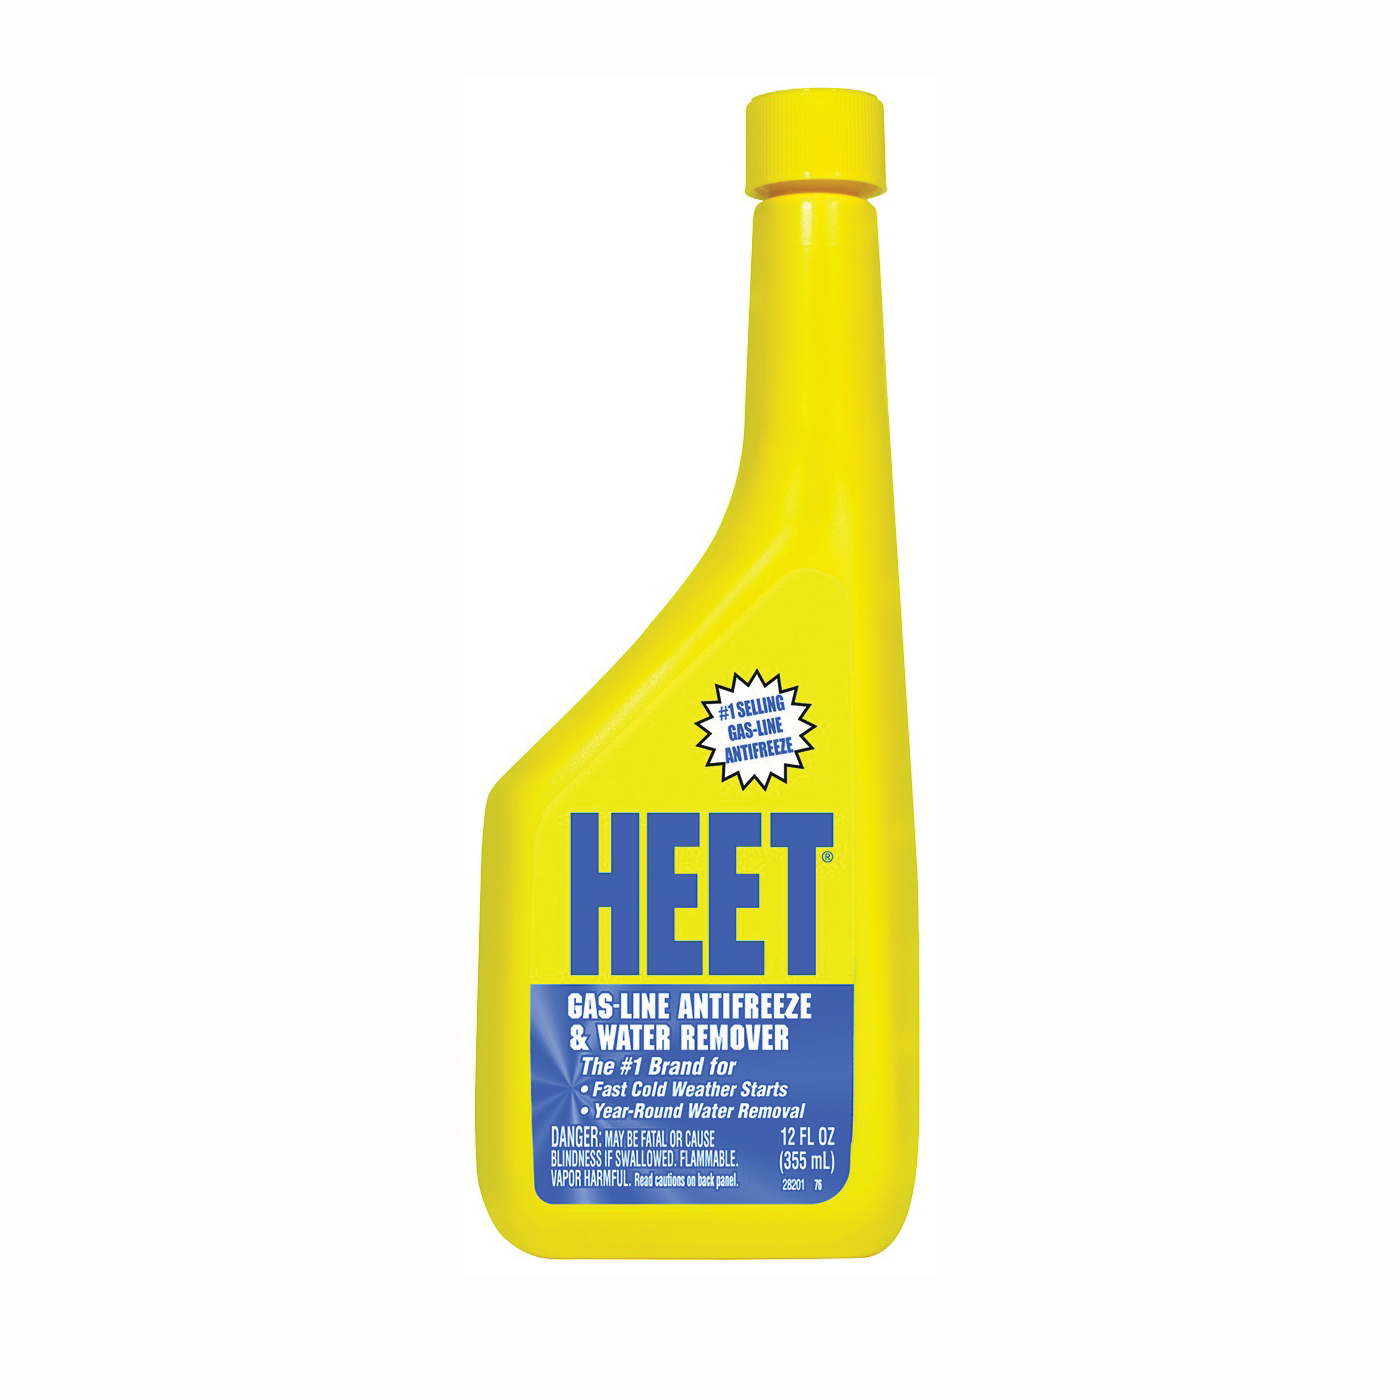 Picture of Heet 28201 Gas Line Antifreeze and Water Remover Pale Yellow, 12 oz Package, Bottle